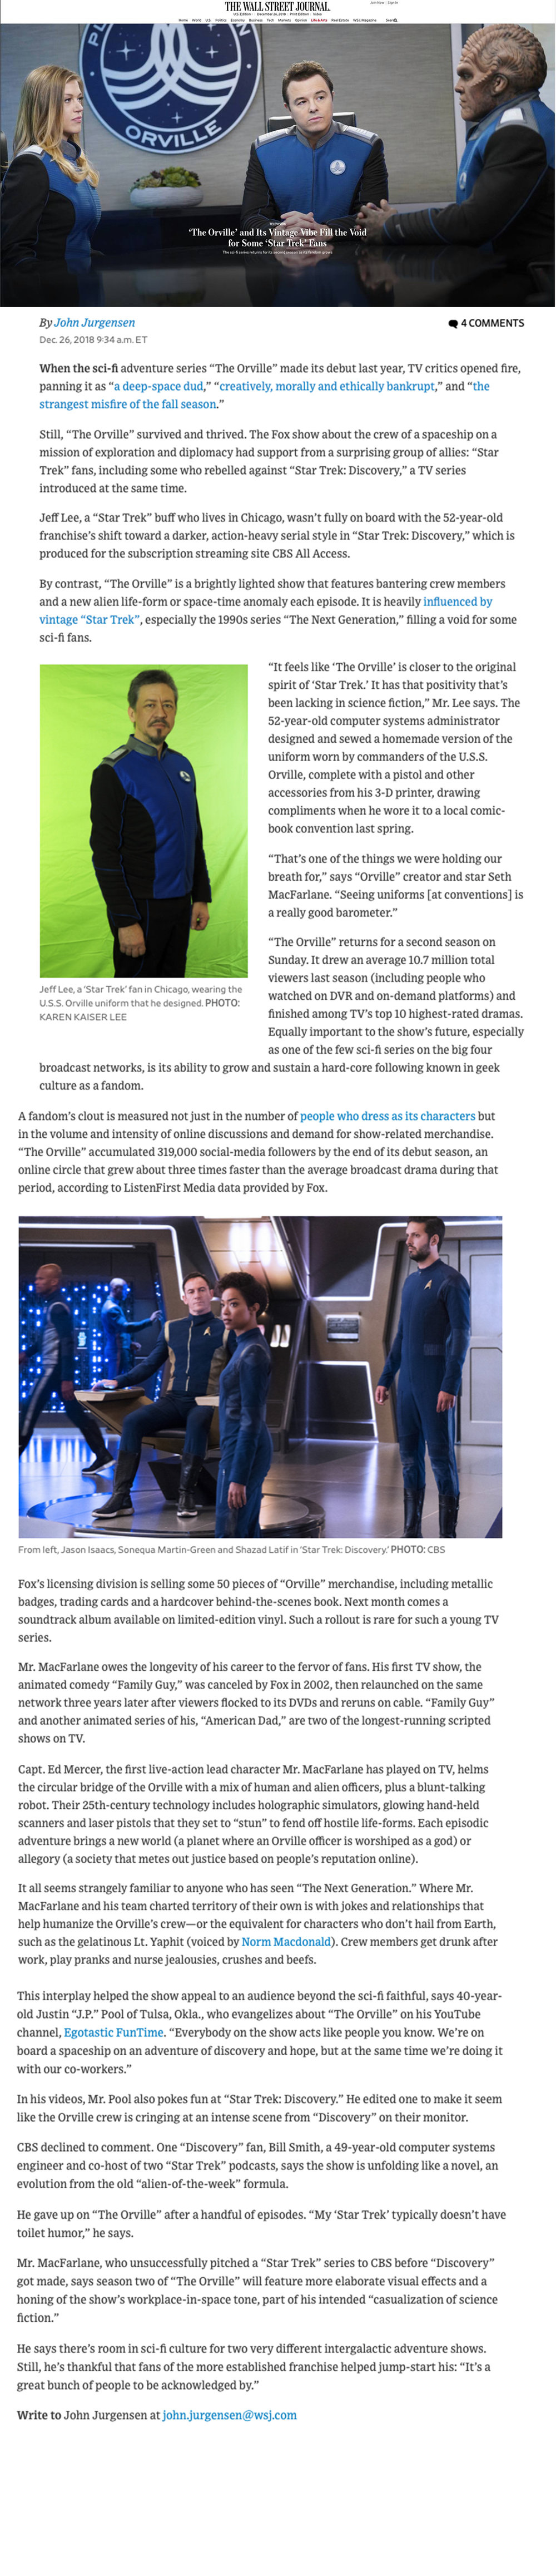 Talking The Orville WSJ.jpg